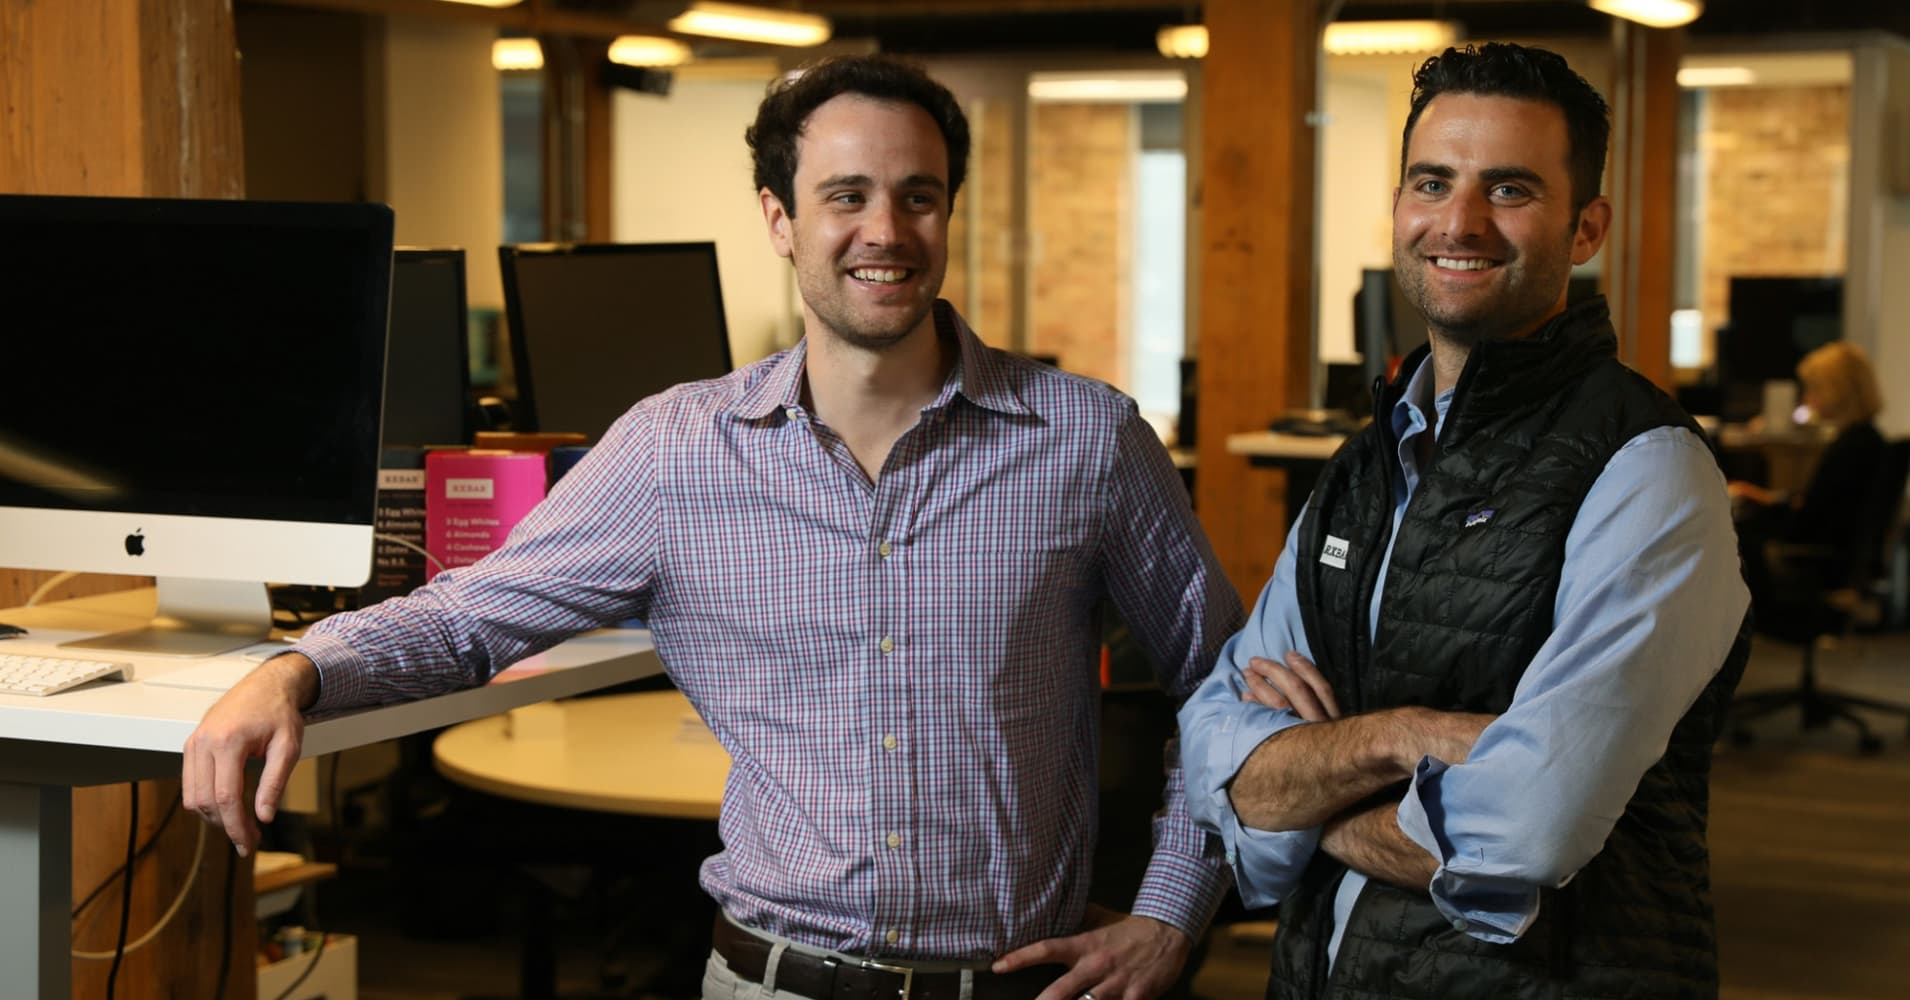 RXBAR co-founders Jared Smith (left) and Peter Rahal